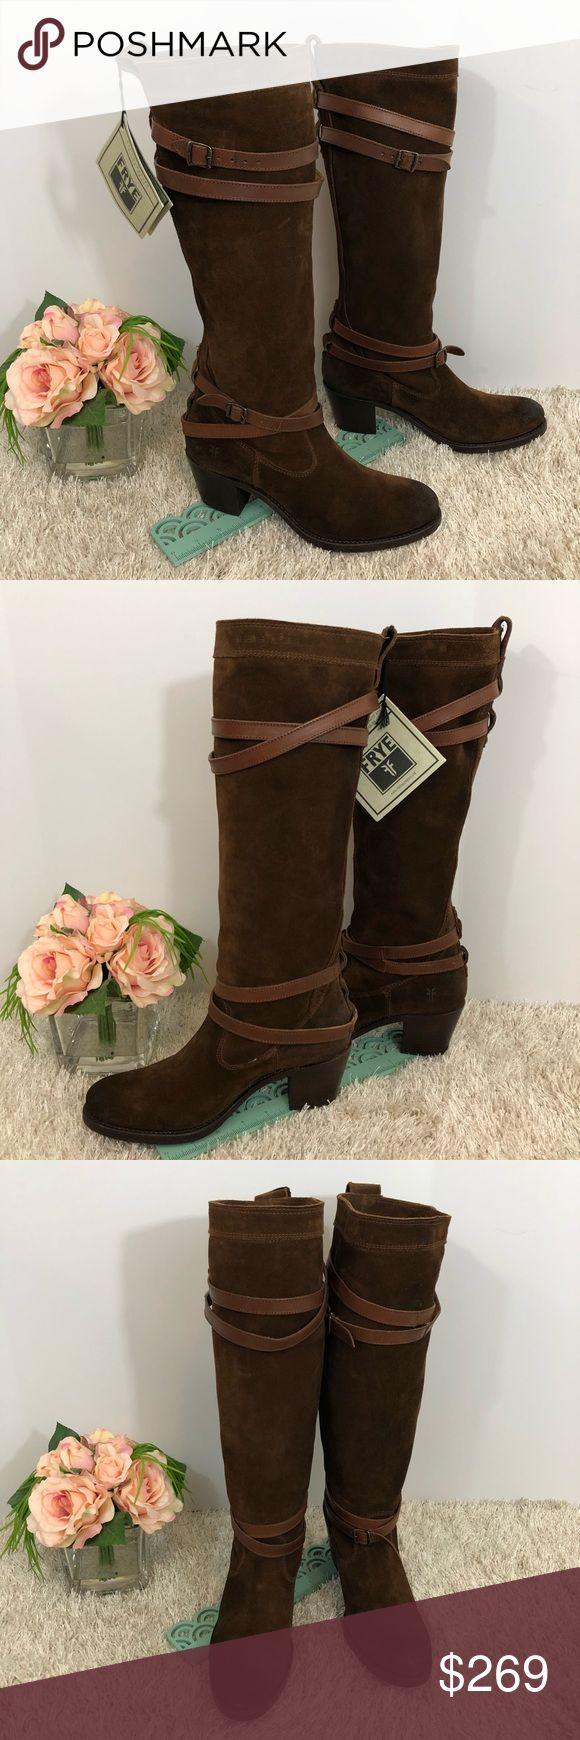 Frye NWT Jane Strappy Brown Knee High Tall Boots Super cool boots! See pictures for details! Bundle for a private discount! Reasonable offers accepted! Frye Shoes Heeled Boots